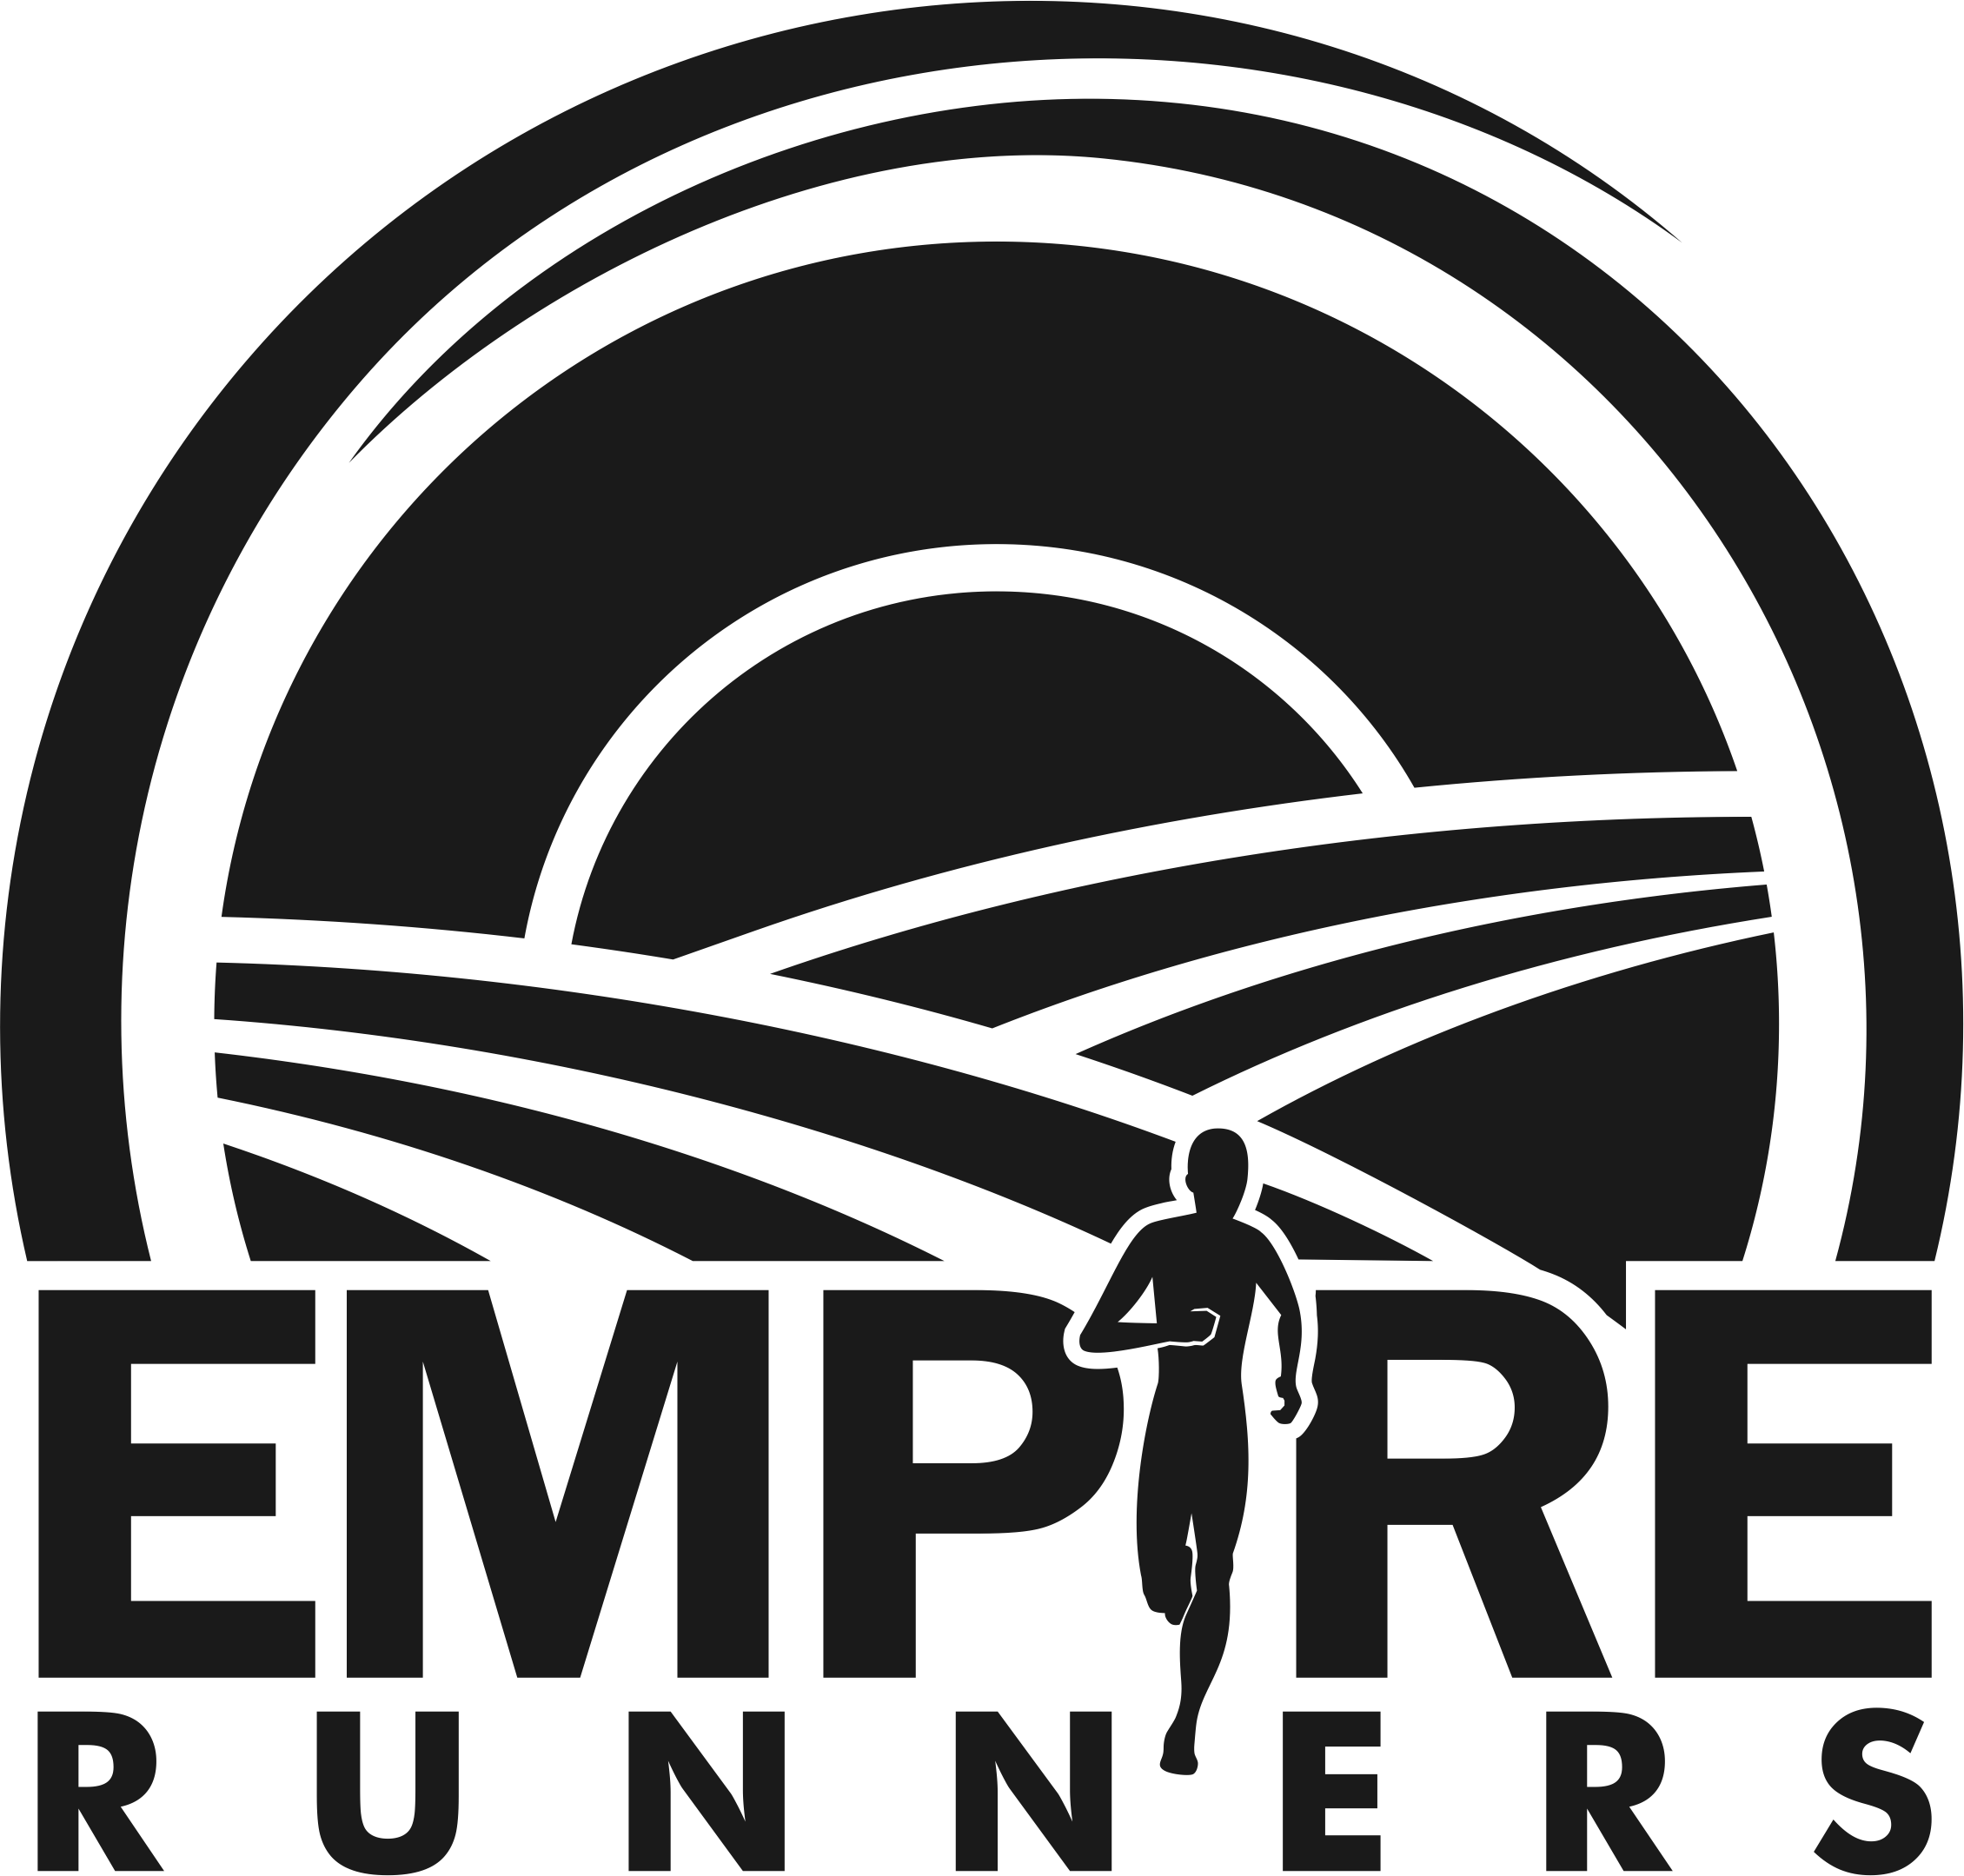 Needed: logo for running club in gorgeous wine country and redwoods